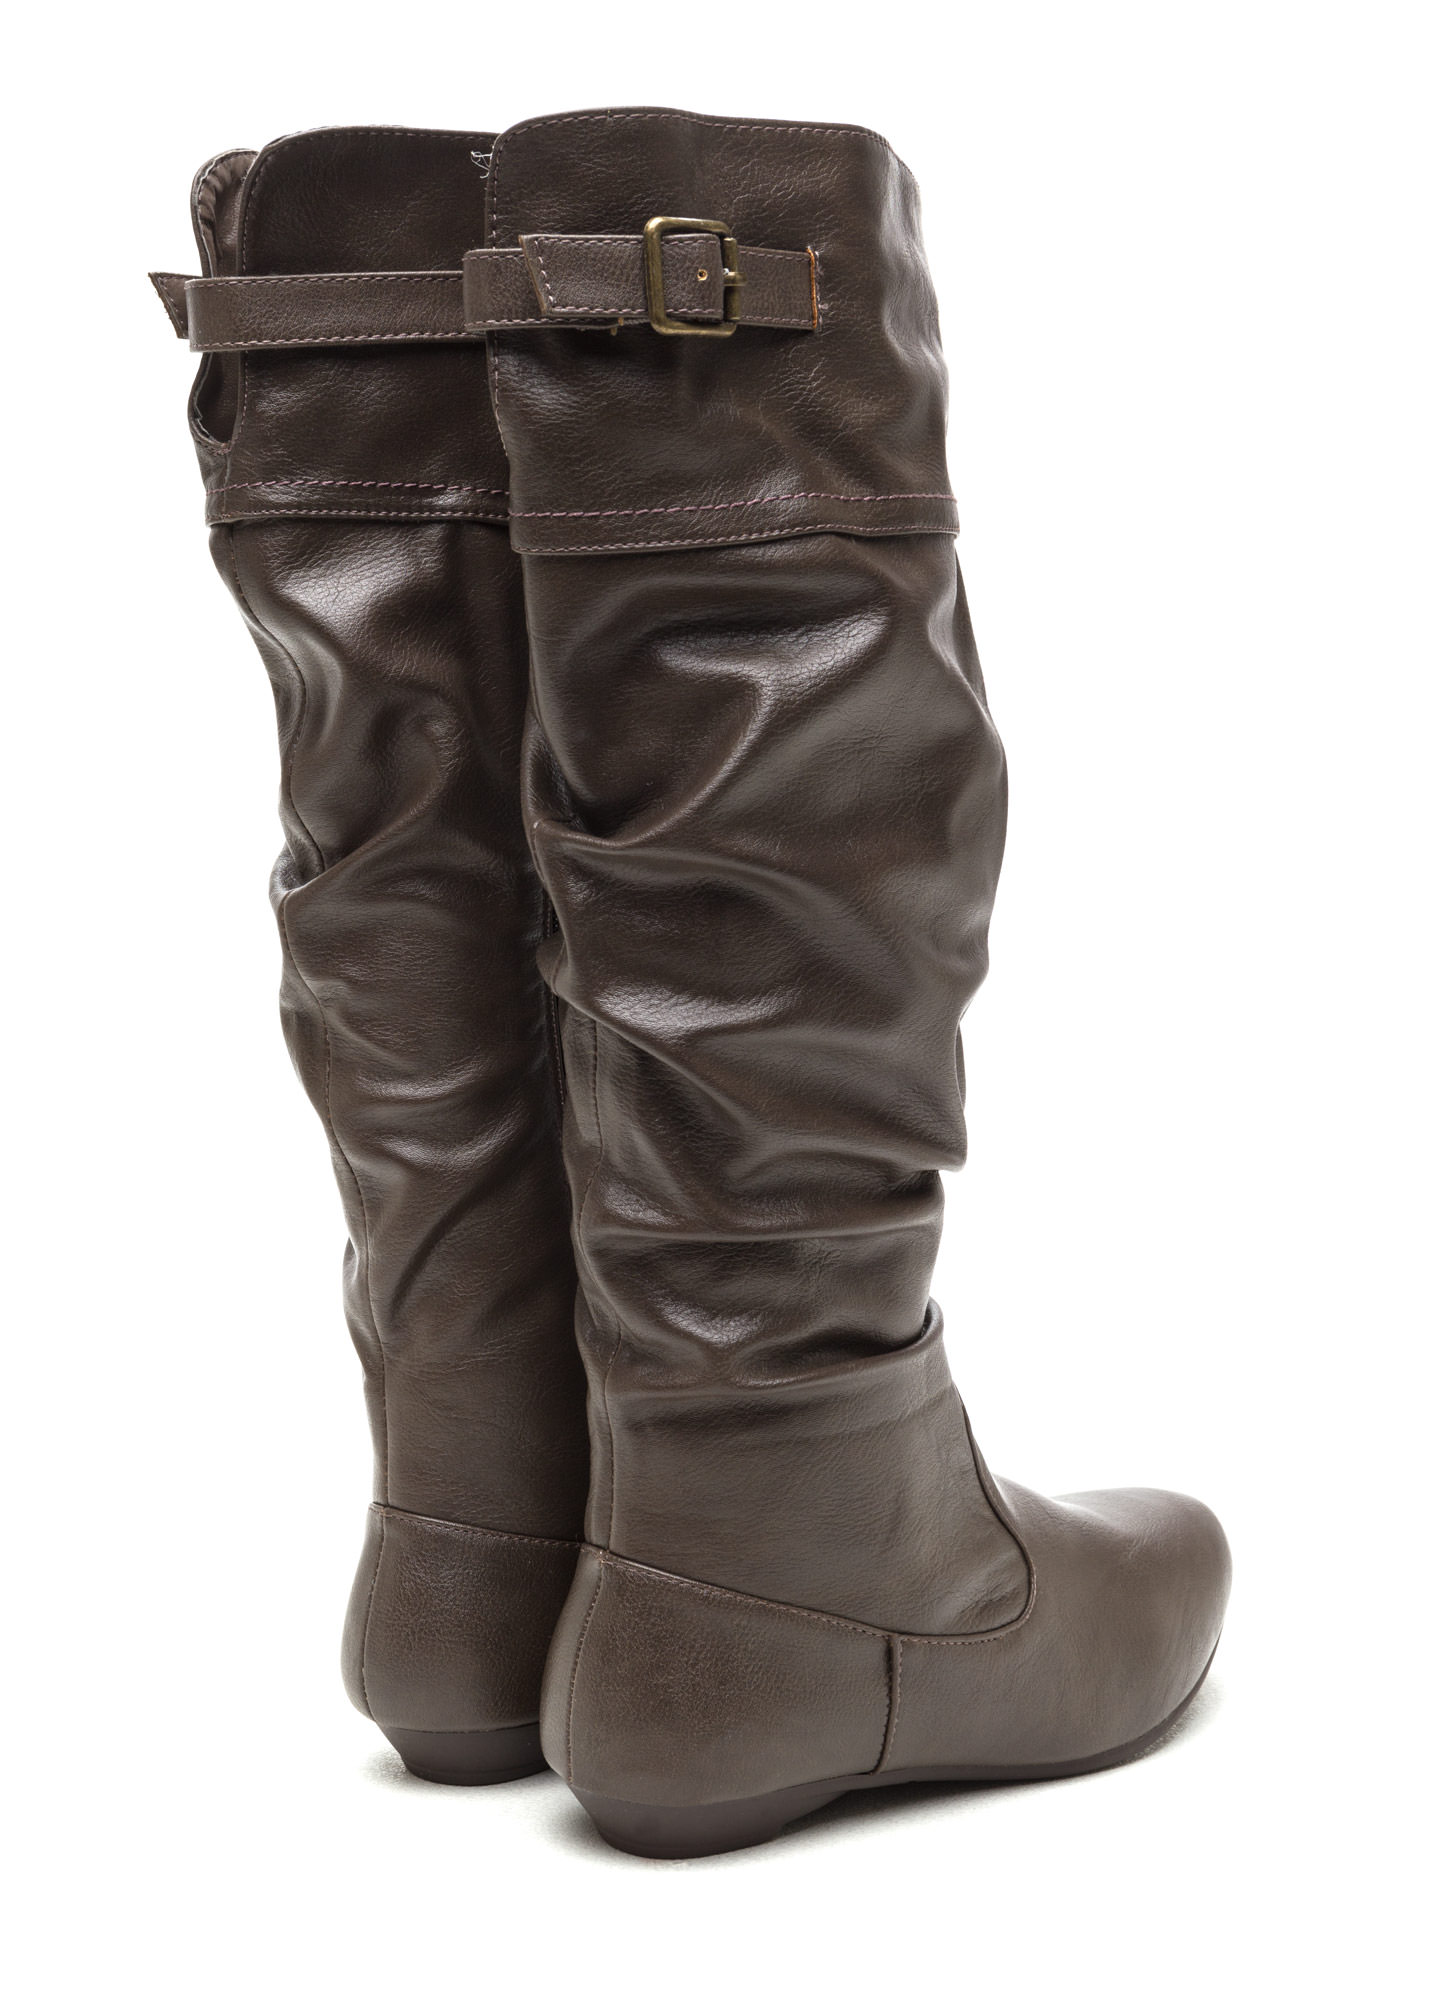 Strap 'Em Up Slouchy Knee-High Boots TAUPE